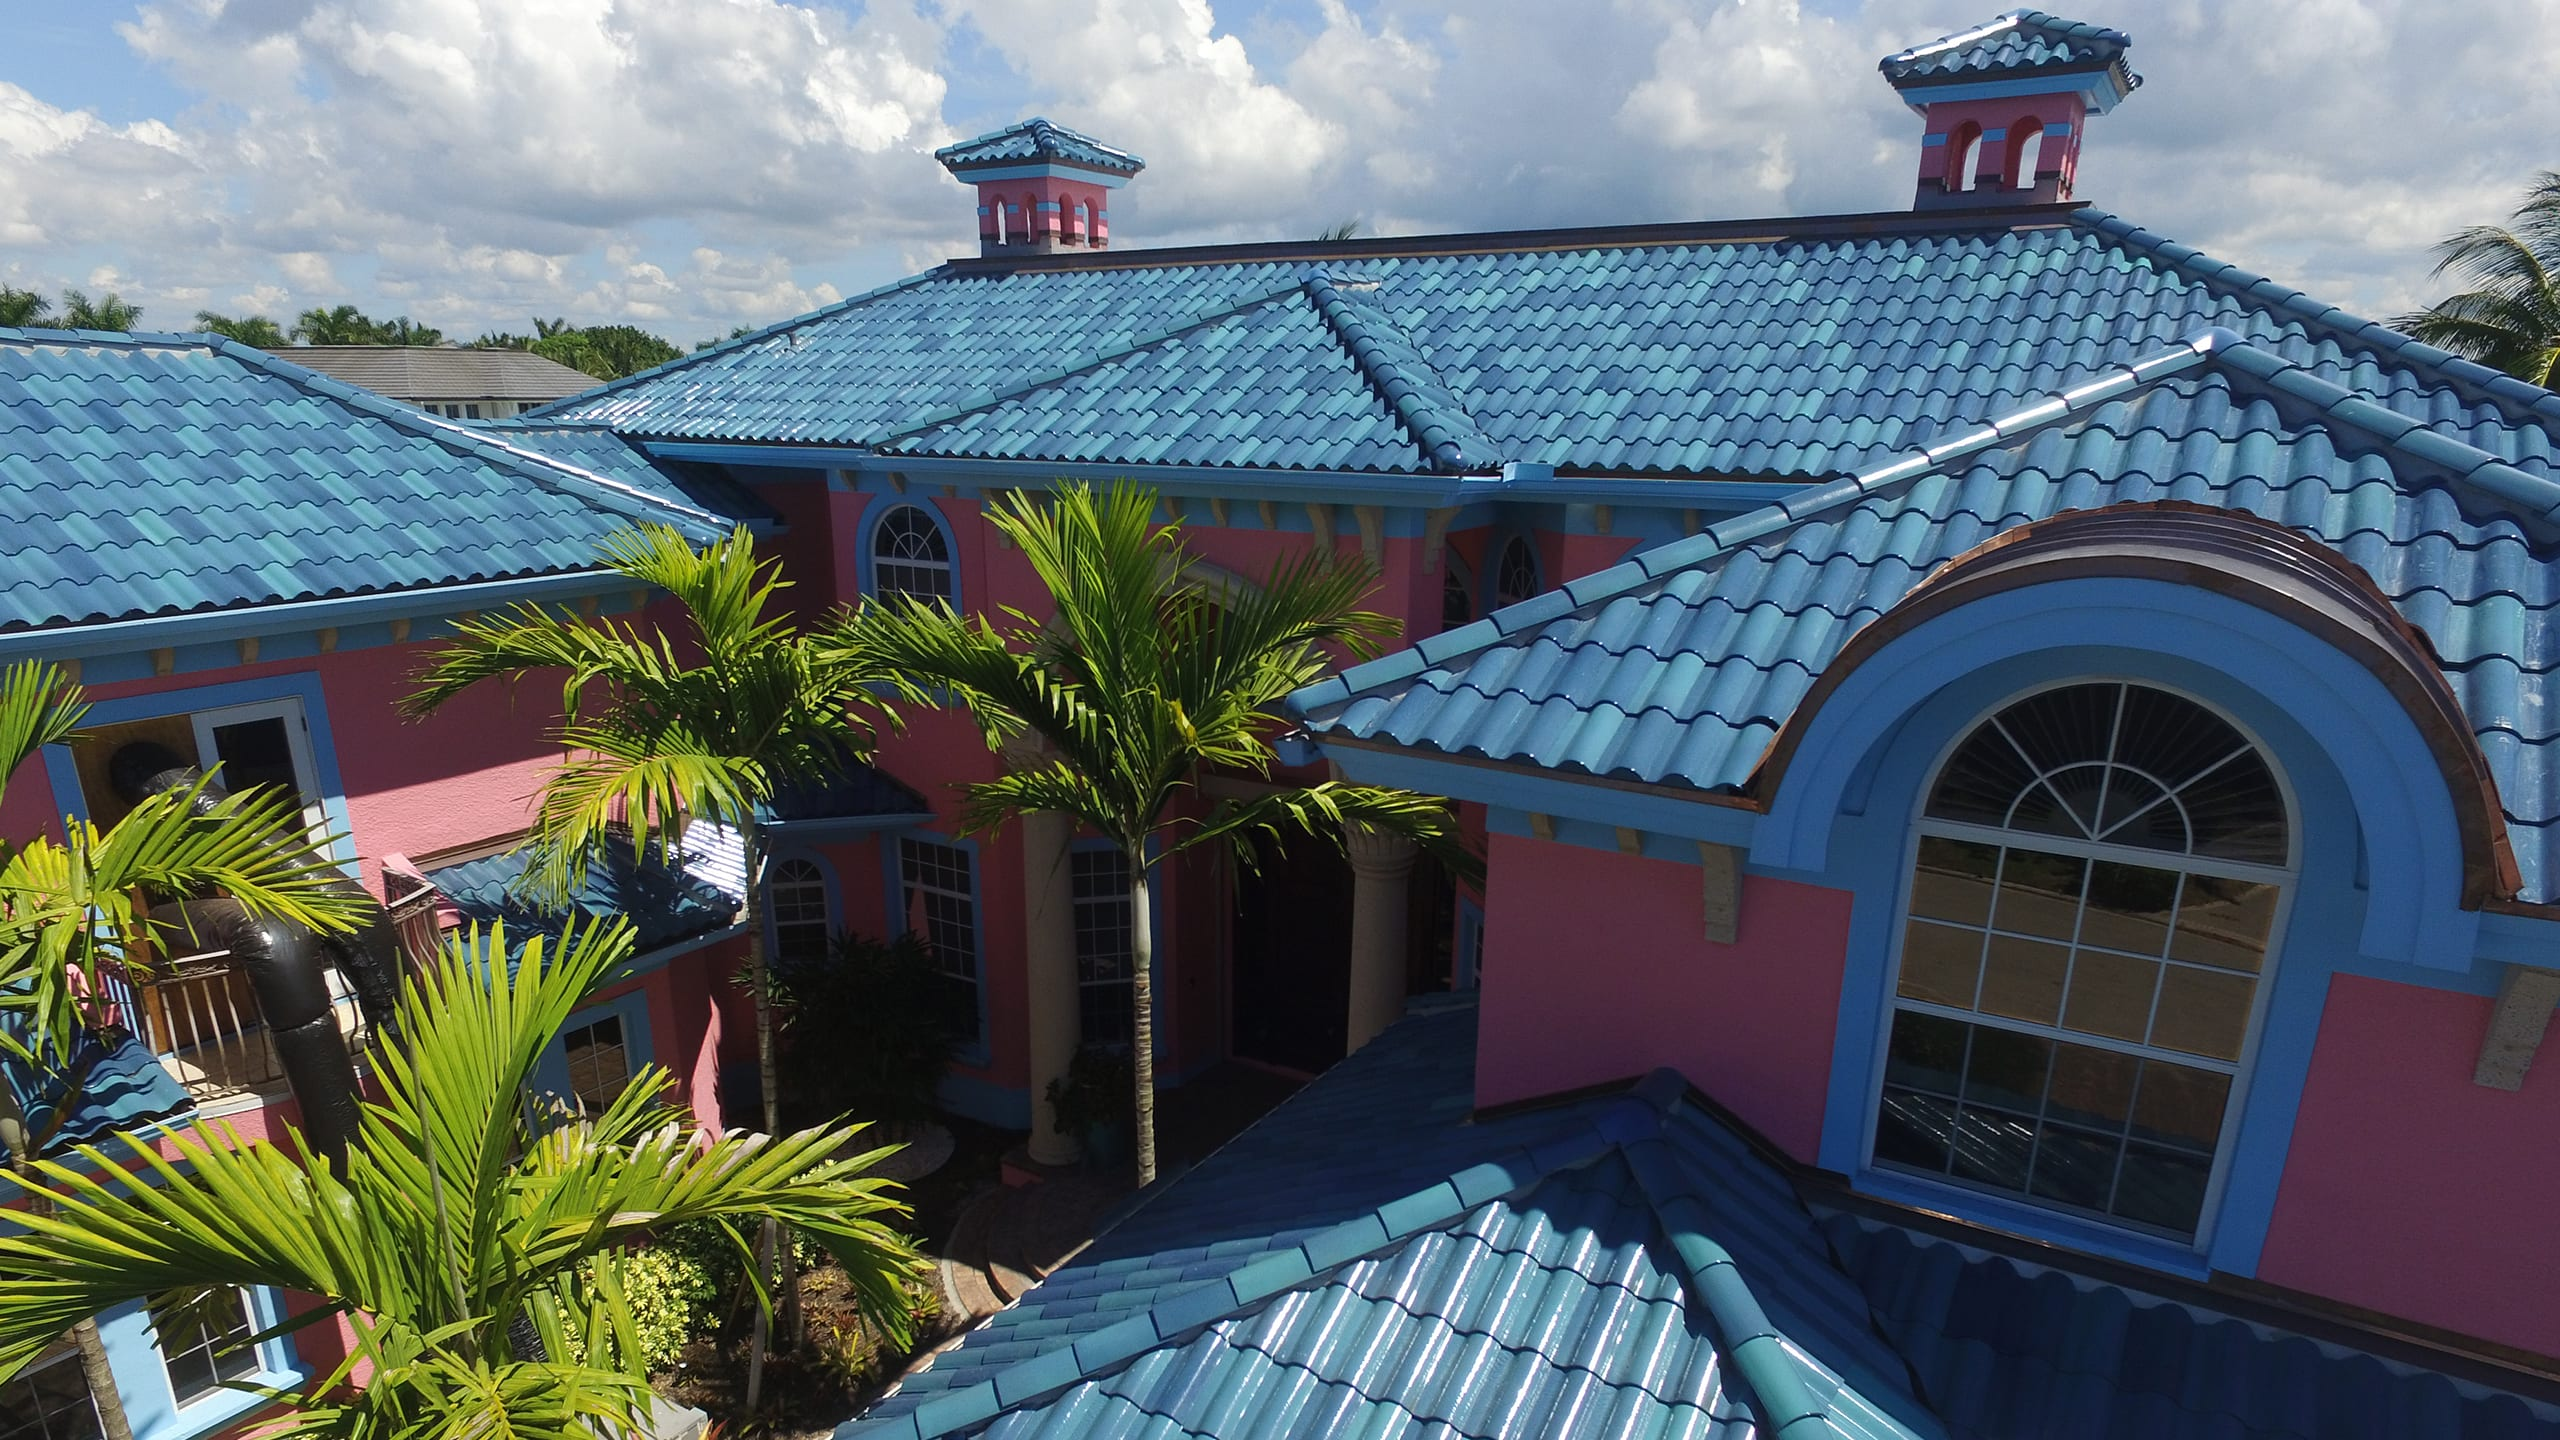 Private Residence - Naples Ludowici Roof Tile